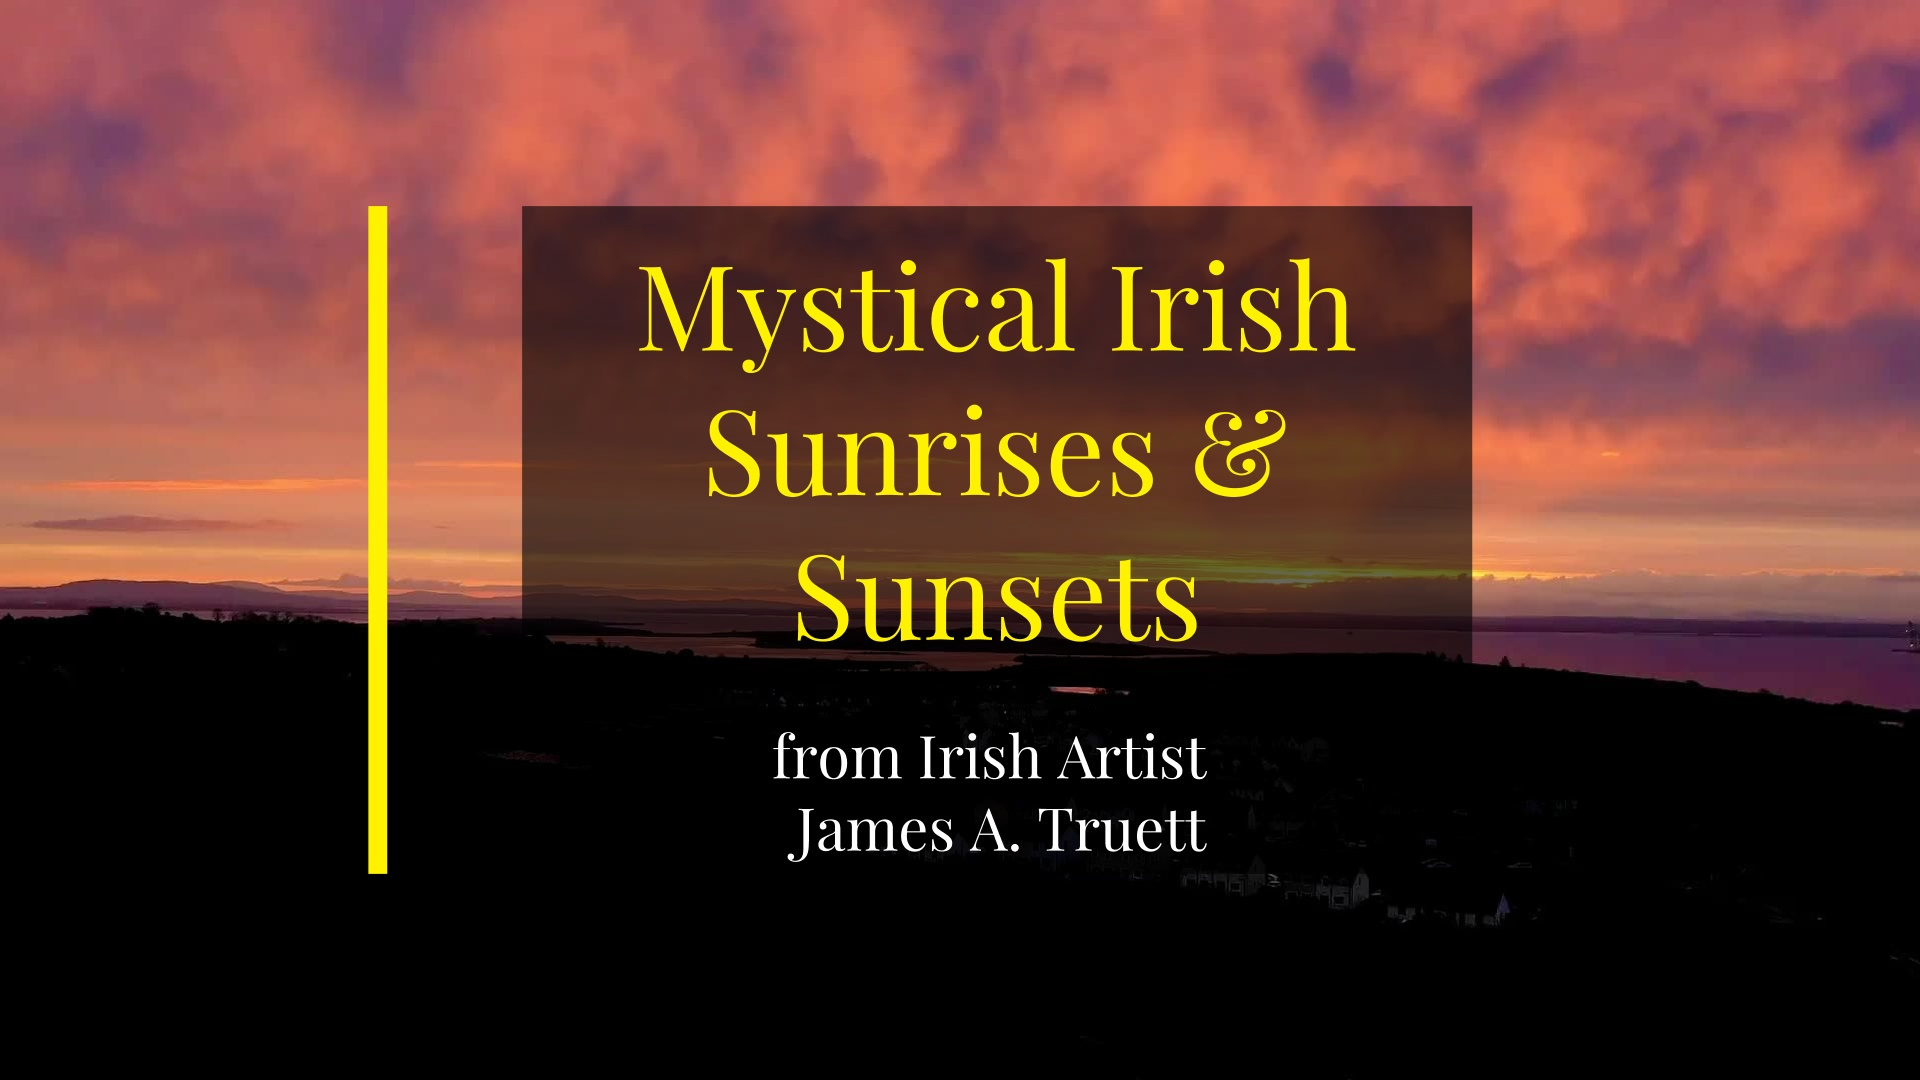 Mystical Irish Sunrises & Sunsets